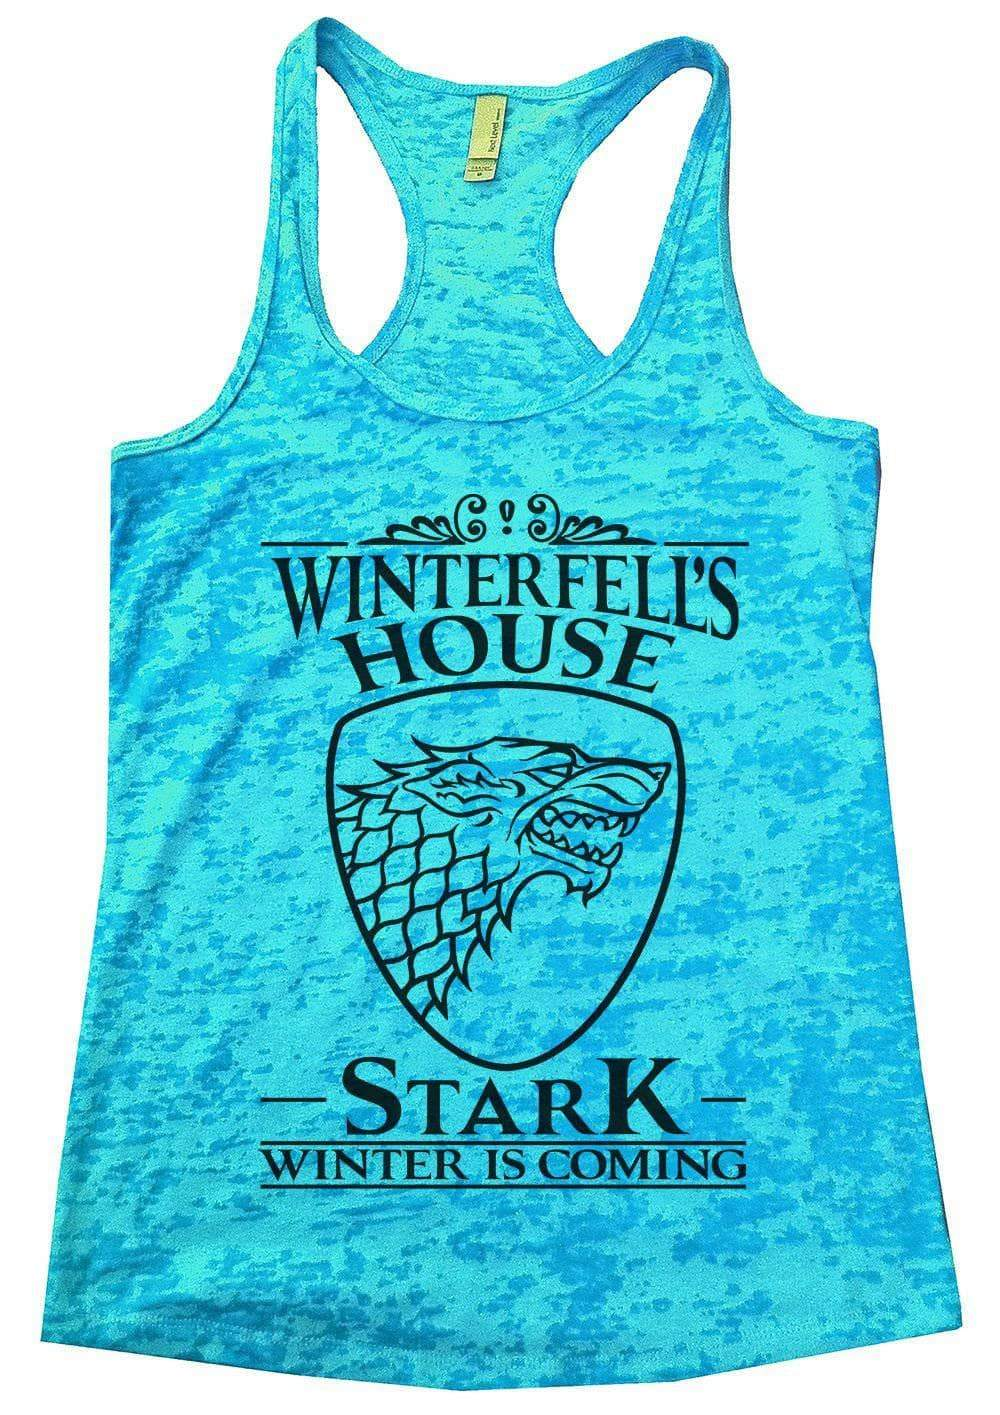 Winterfell's House Stark Winter Is Coming Burnout Tank Top By Womens Tank Tops Small Womens Tank Tops Tahiti Blue